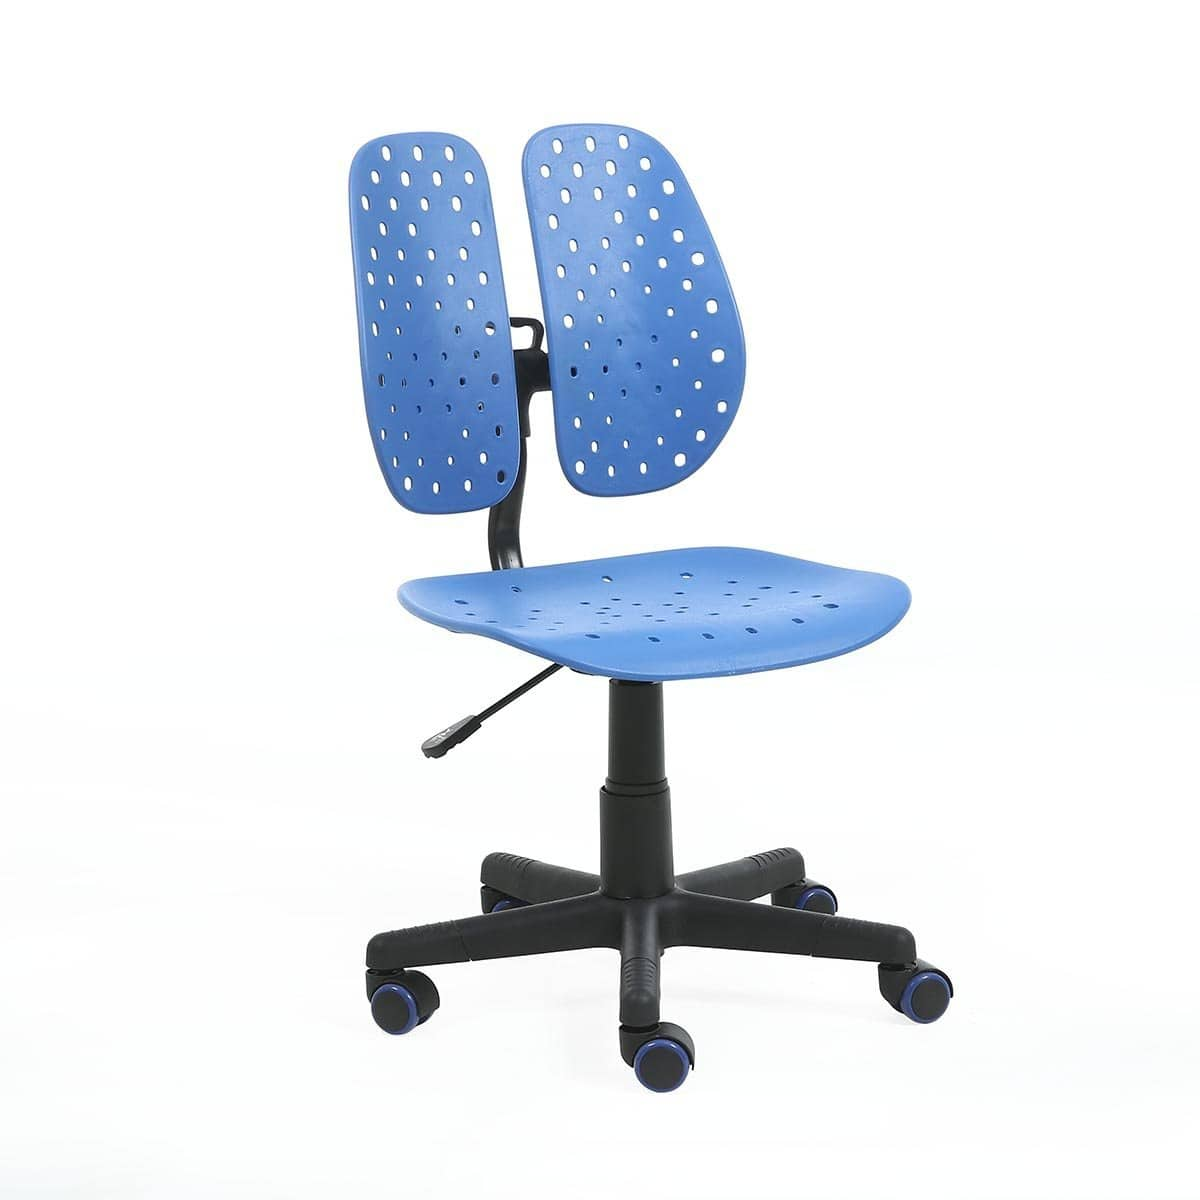 50% OFF SAVE $80!! DaKang Modern Mid Double Back  Ergonomic Office Chair  with Lumbar Support (Blue) $79.99